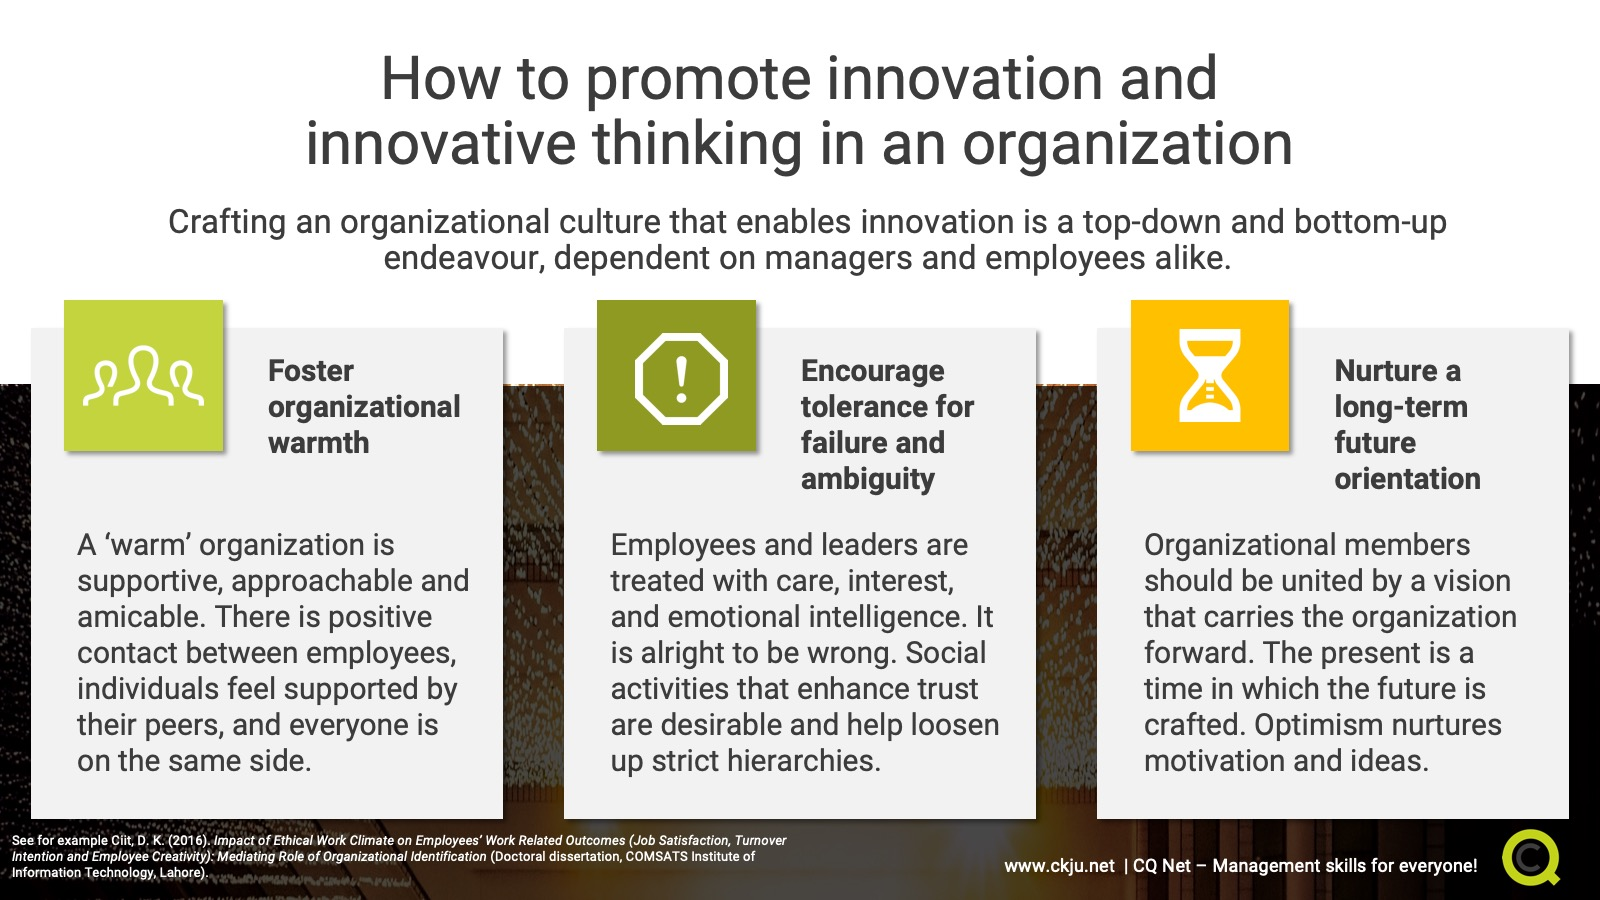 How to promote innovation and innovative thinking in an organization